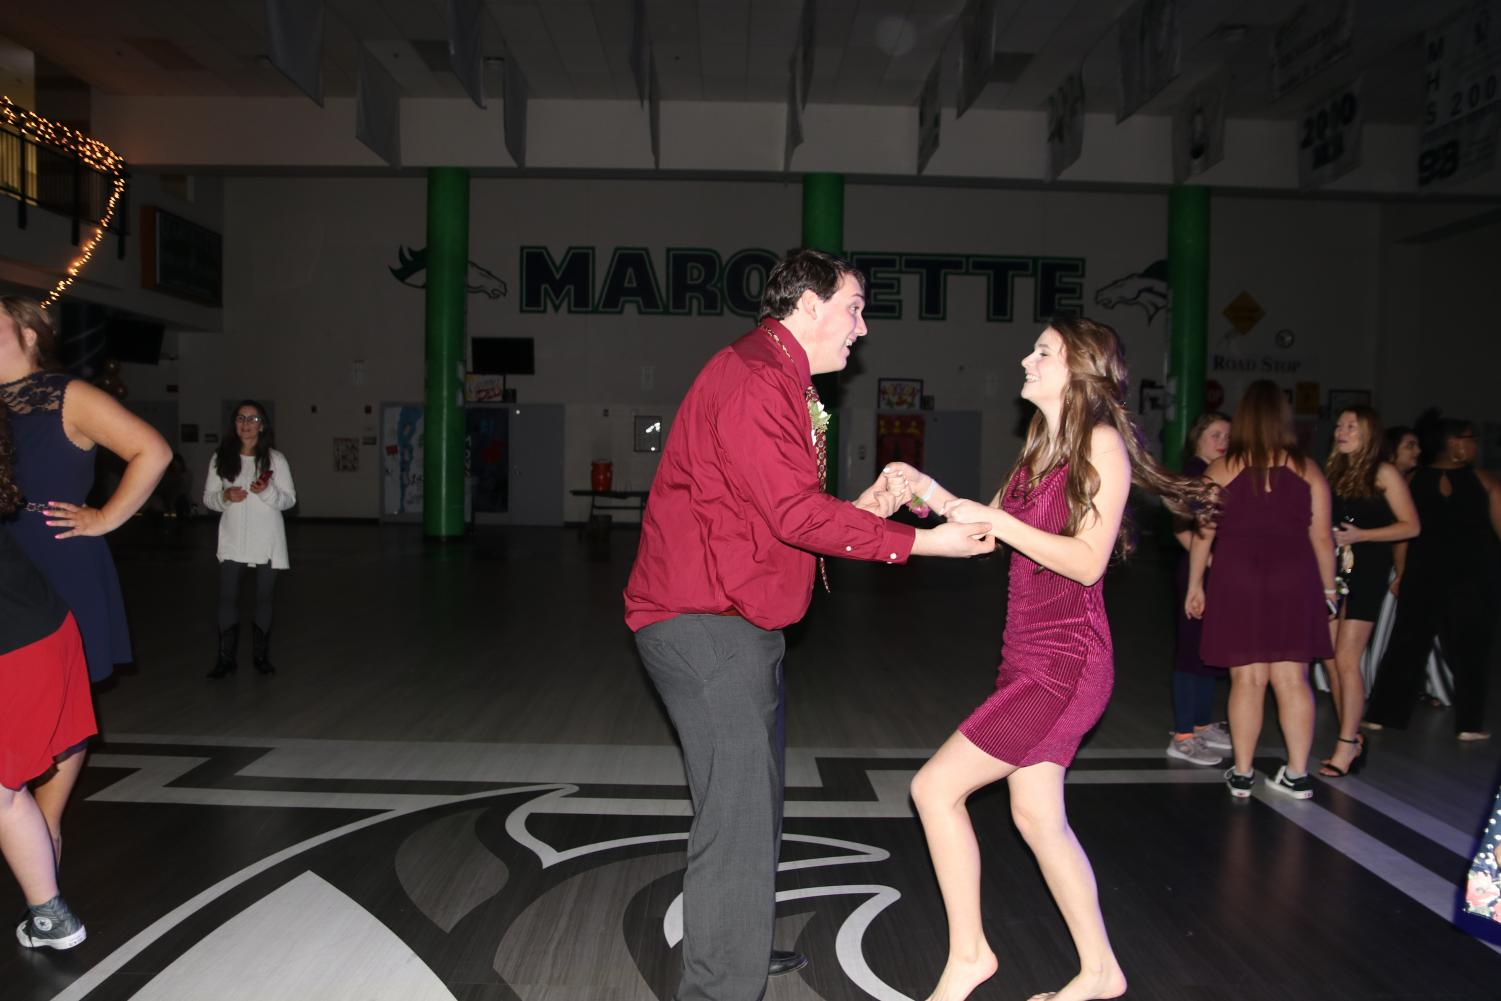 Juniors+Natalie+Anderson+and+AJ+Burger+dance+together.+Anderson+has+attended+the+dance+every+year+since+her+freshman+year+and+prefers+it+to+Homecoming+because+she+said+there+are+always+fewer+people+and+better+music.+%E2%80%9CI+just+go+because+she+goes%2C%E2%80%9D+Burger+said.+